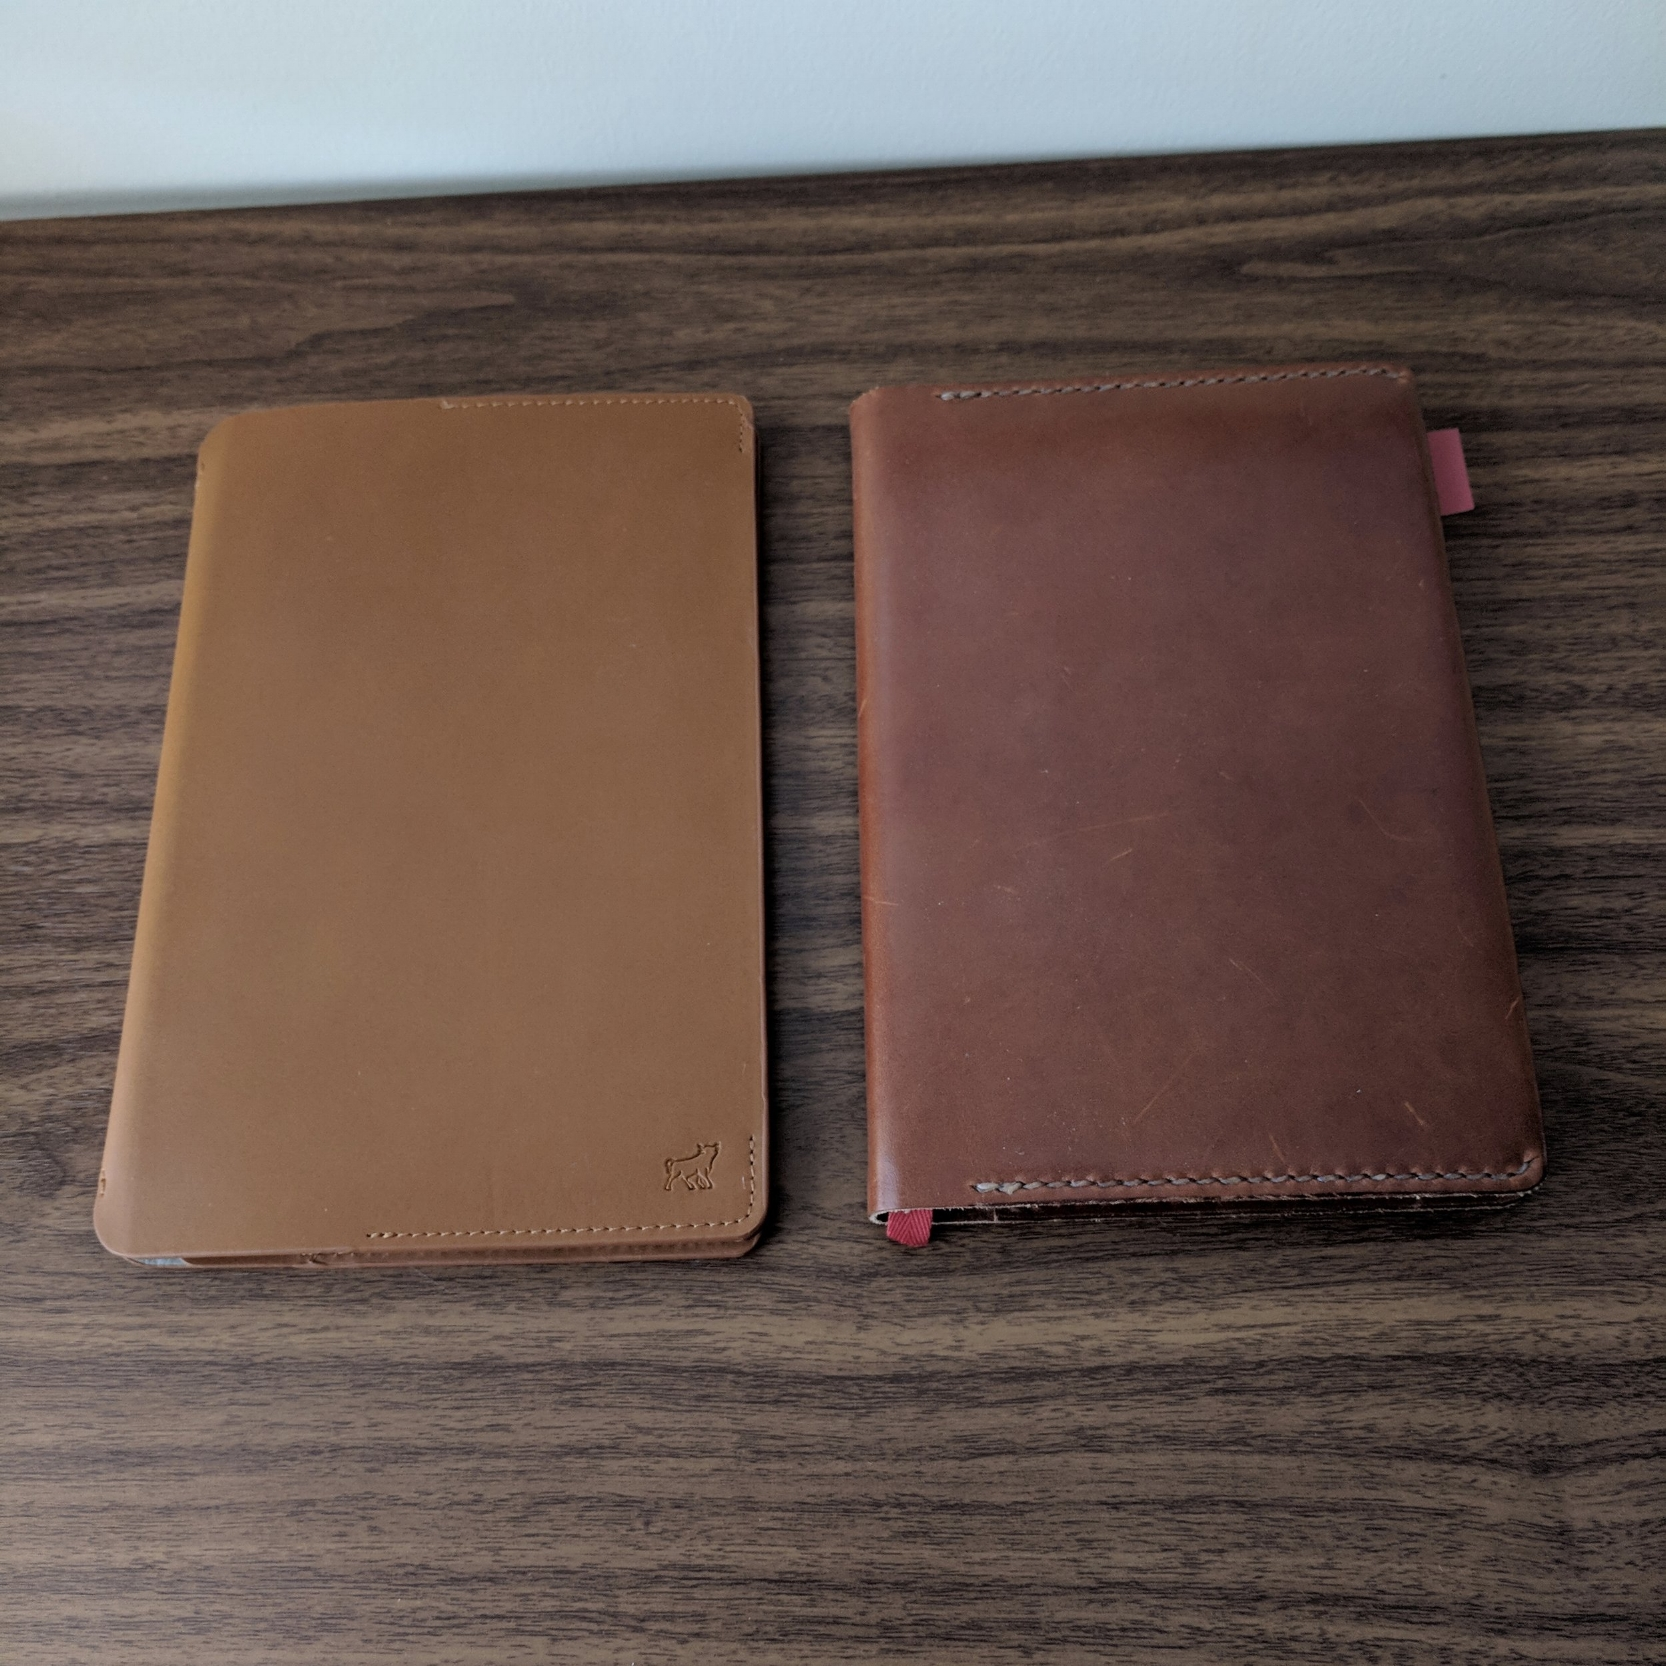 The Bull & Stash Leonard, left, compared against the Baron Fig Confidant, in  a One-Star Leather Goods Cover .